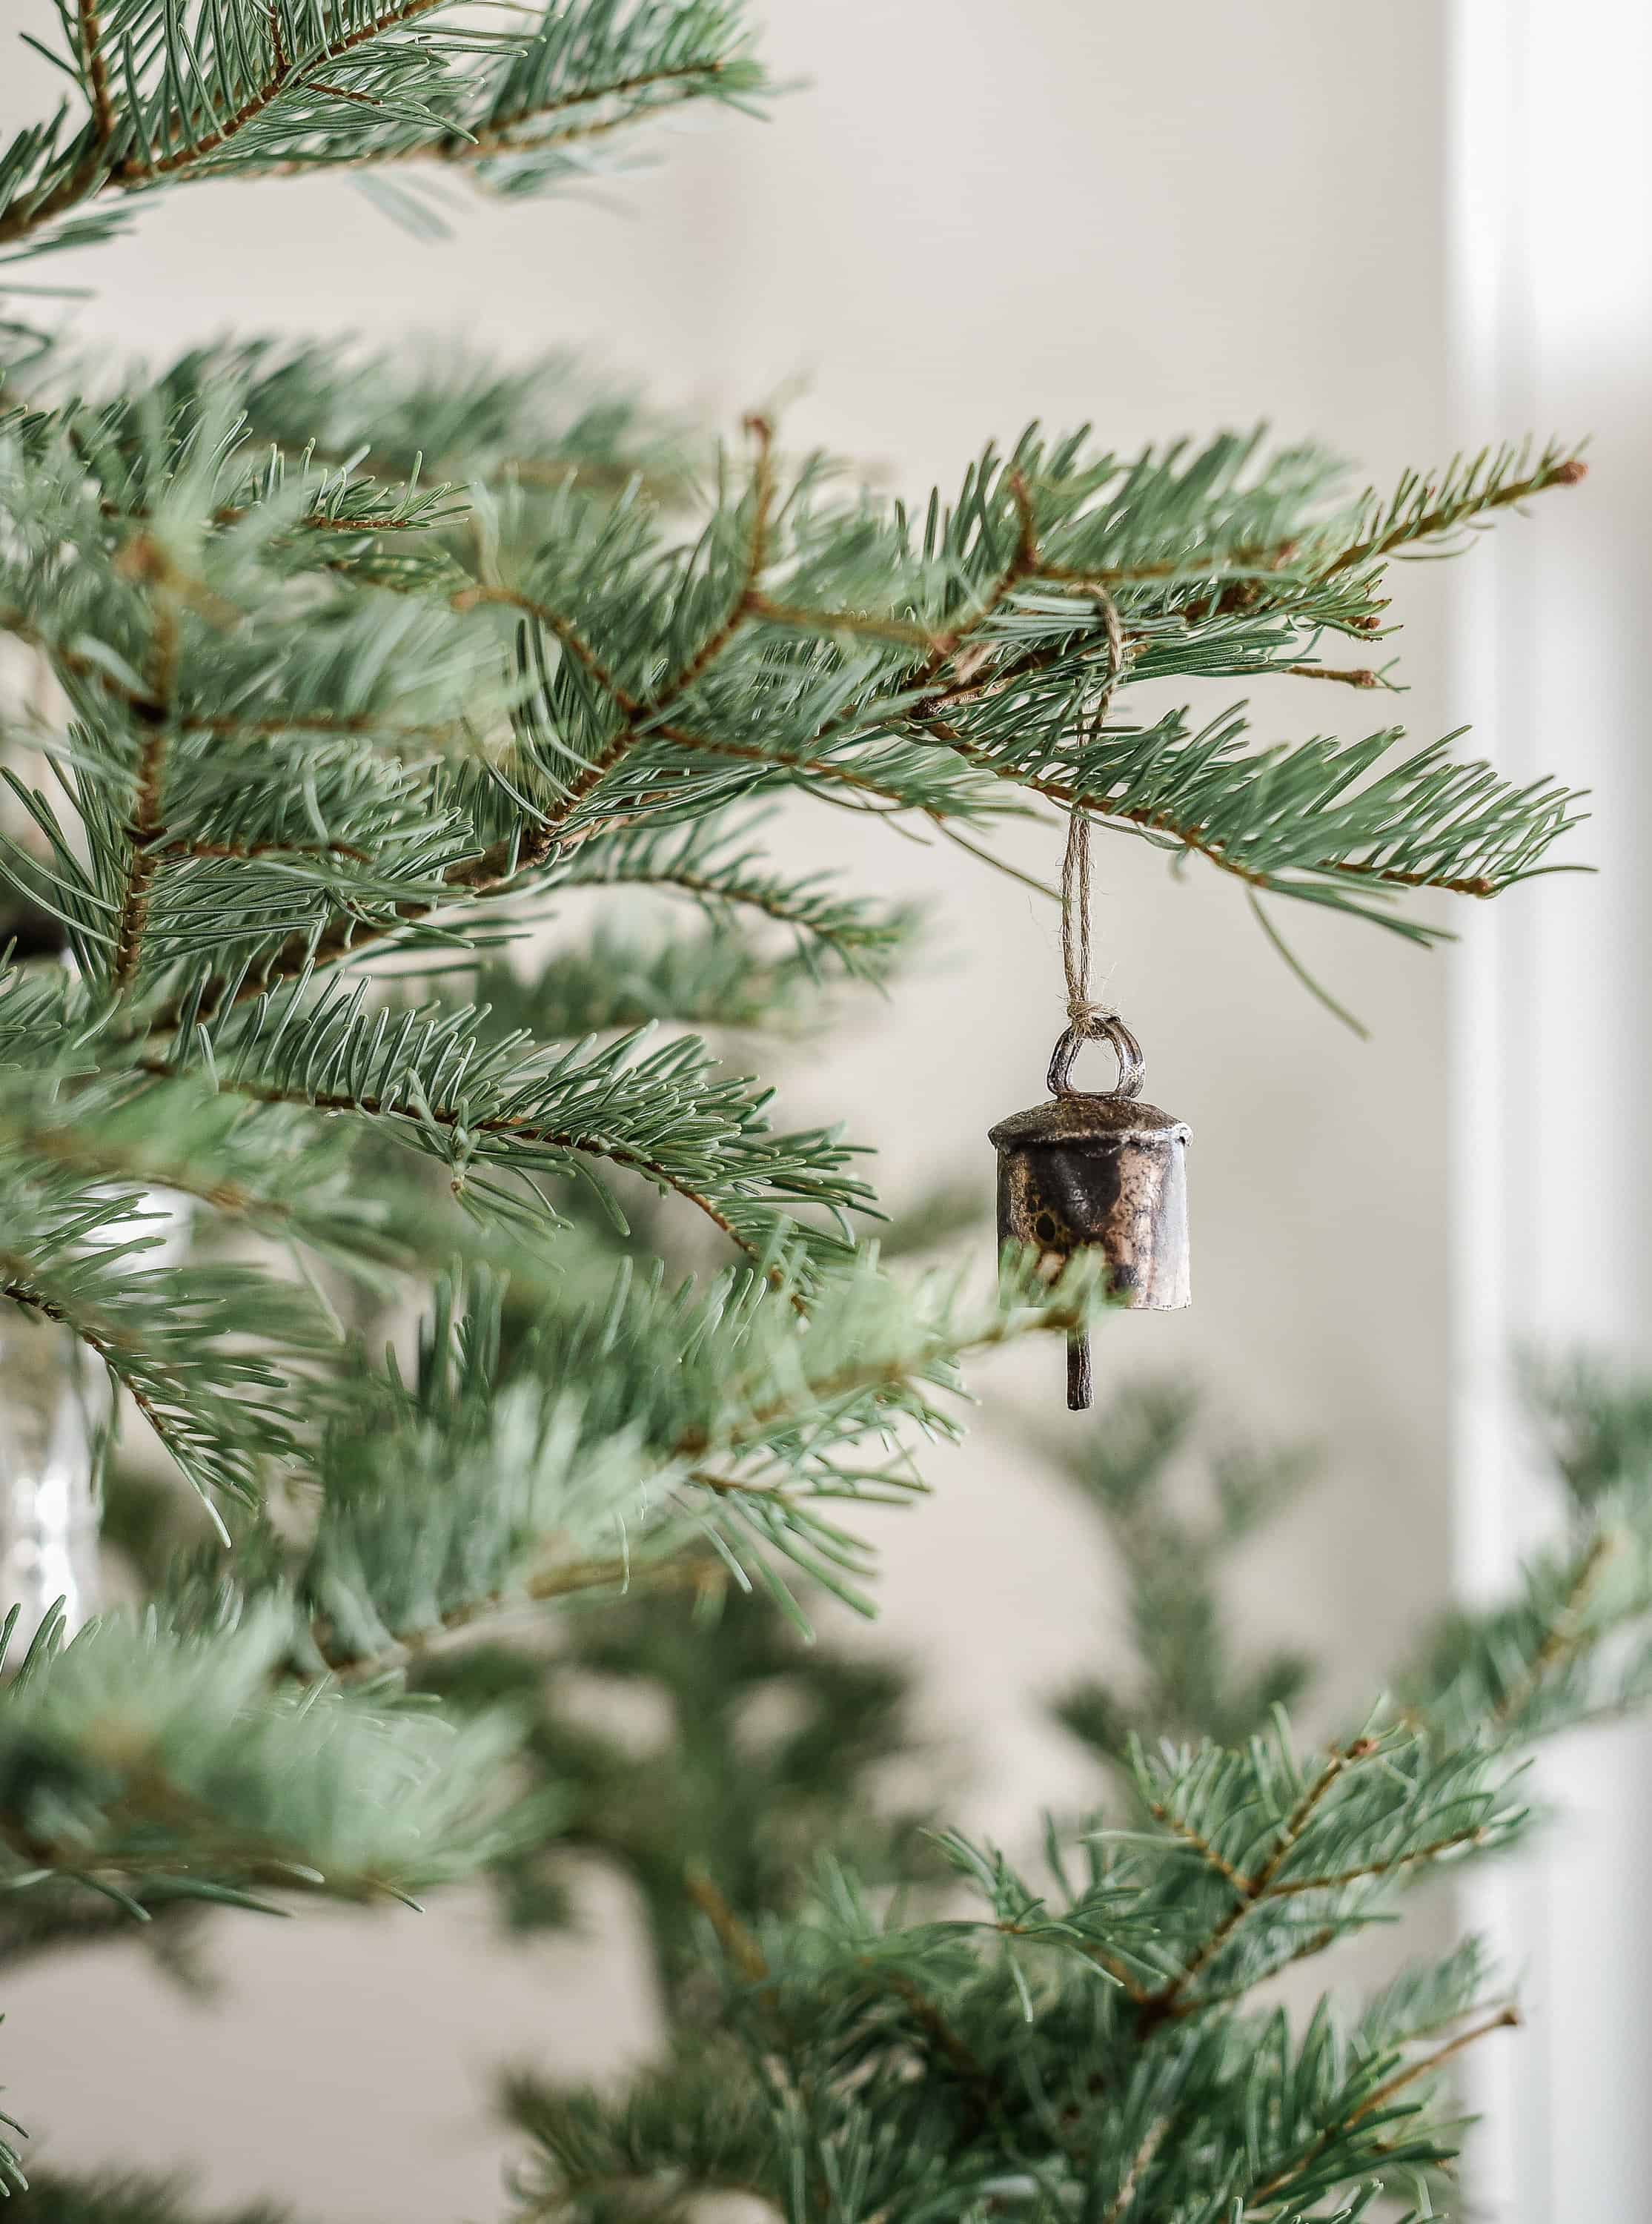 Use vintage Christmas decor this holiday season for a modern farmhouse Christmas! With pops of red and deep green, this minimal Christmas decor is anything but boring!